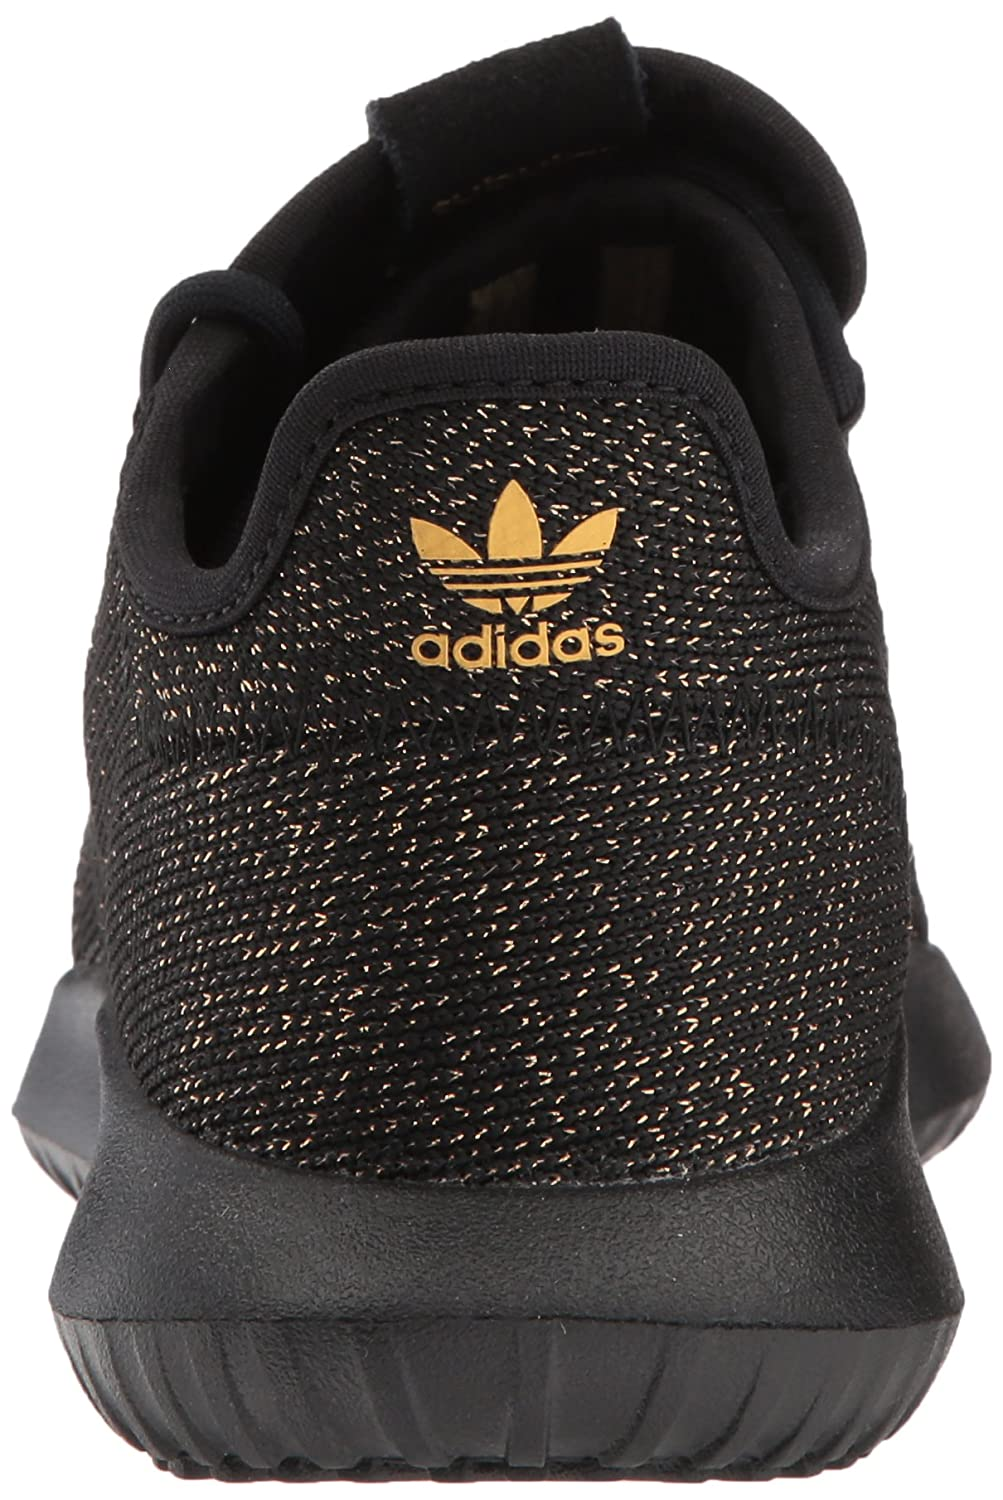 Adidas Originals Kids Black, tubular sombra J sneaker, zapatilla